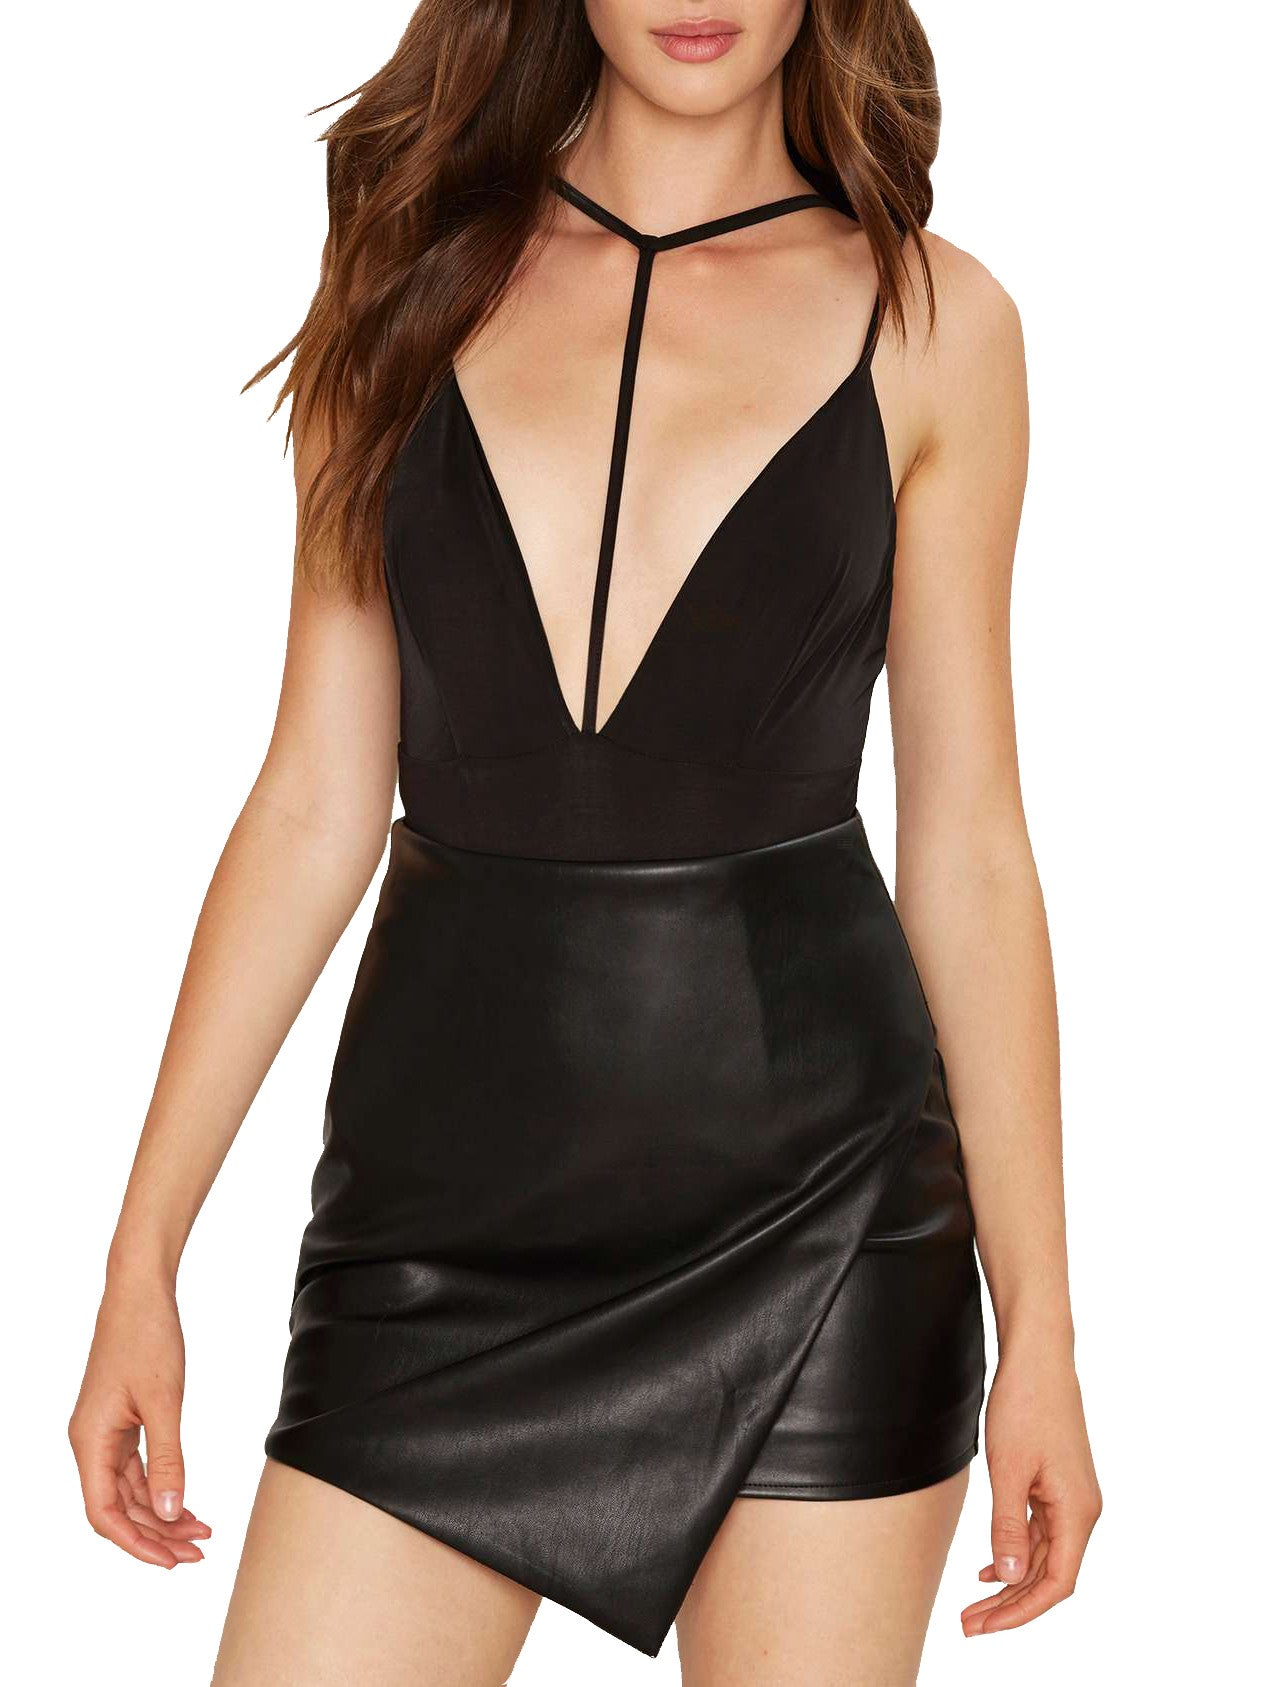 Alline Deep Plunge Bodysuit - PRADEGAL